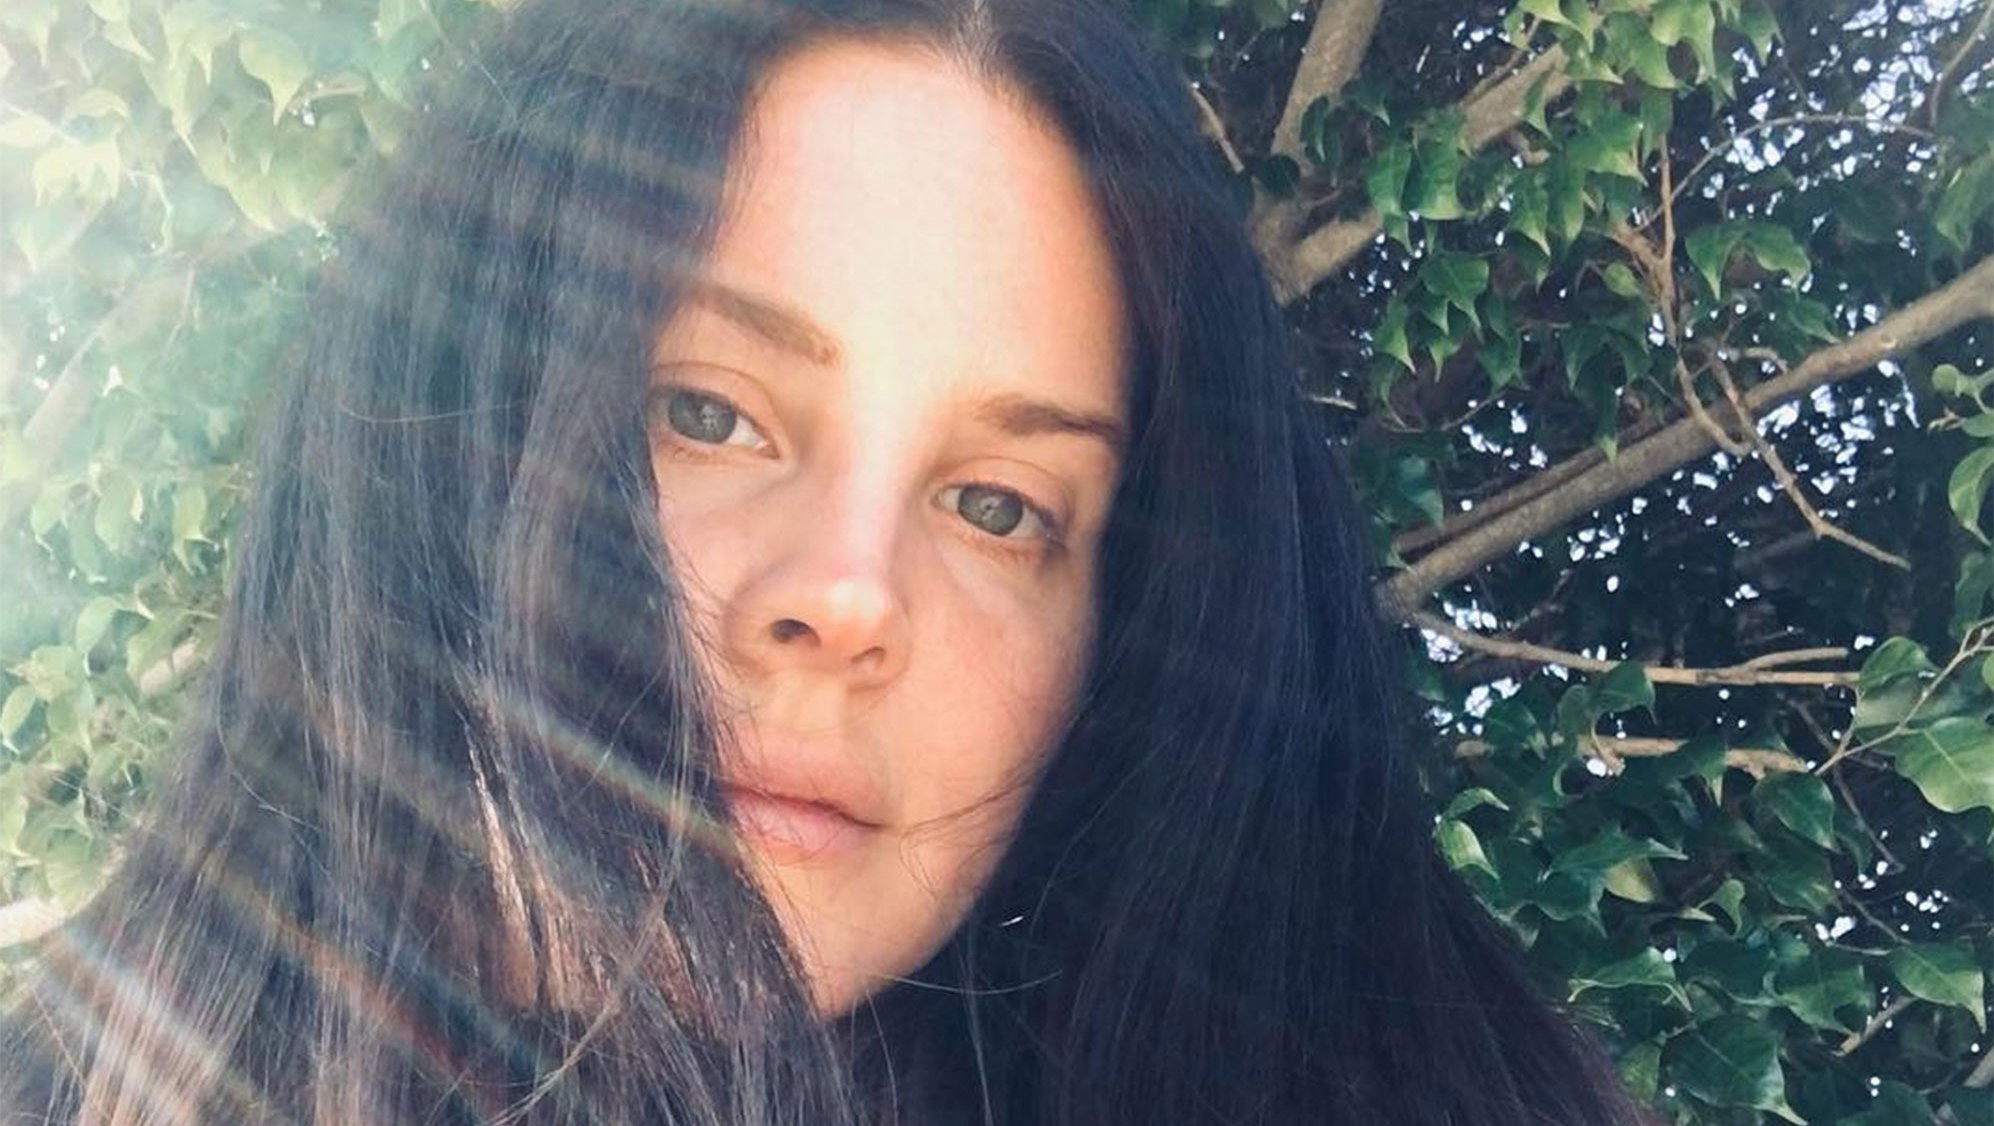 Lana Del Rey Joins the Celeb No-Makeup Club With a Glowing Bare-Face Selfie